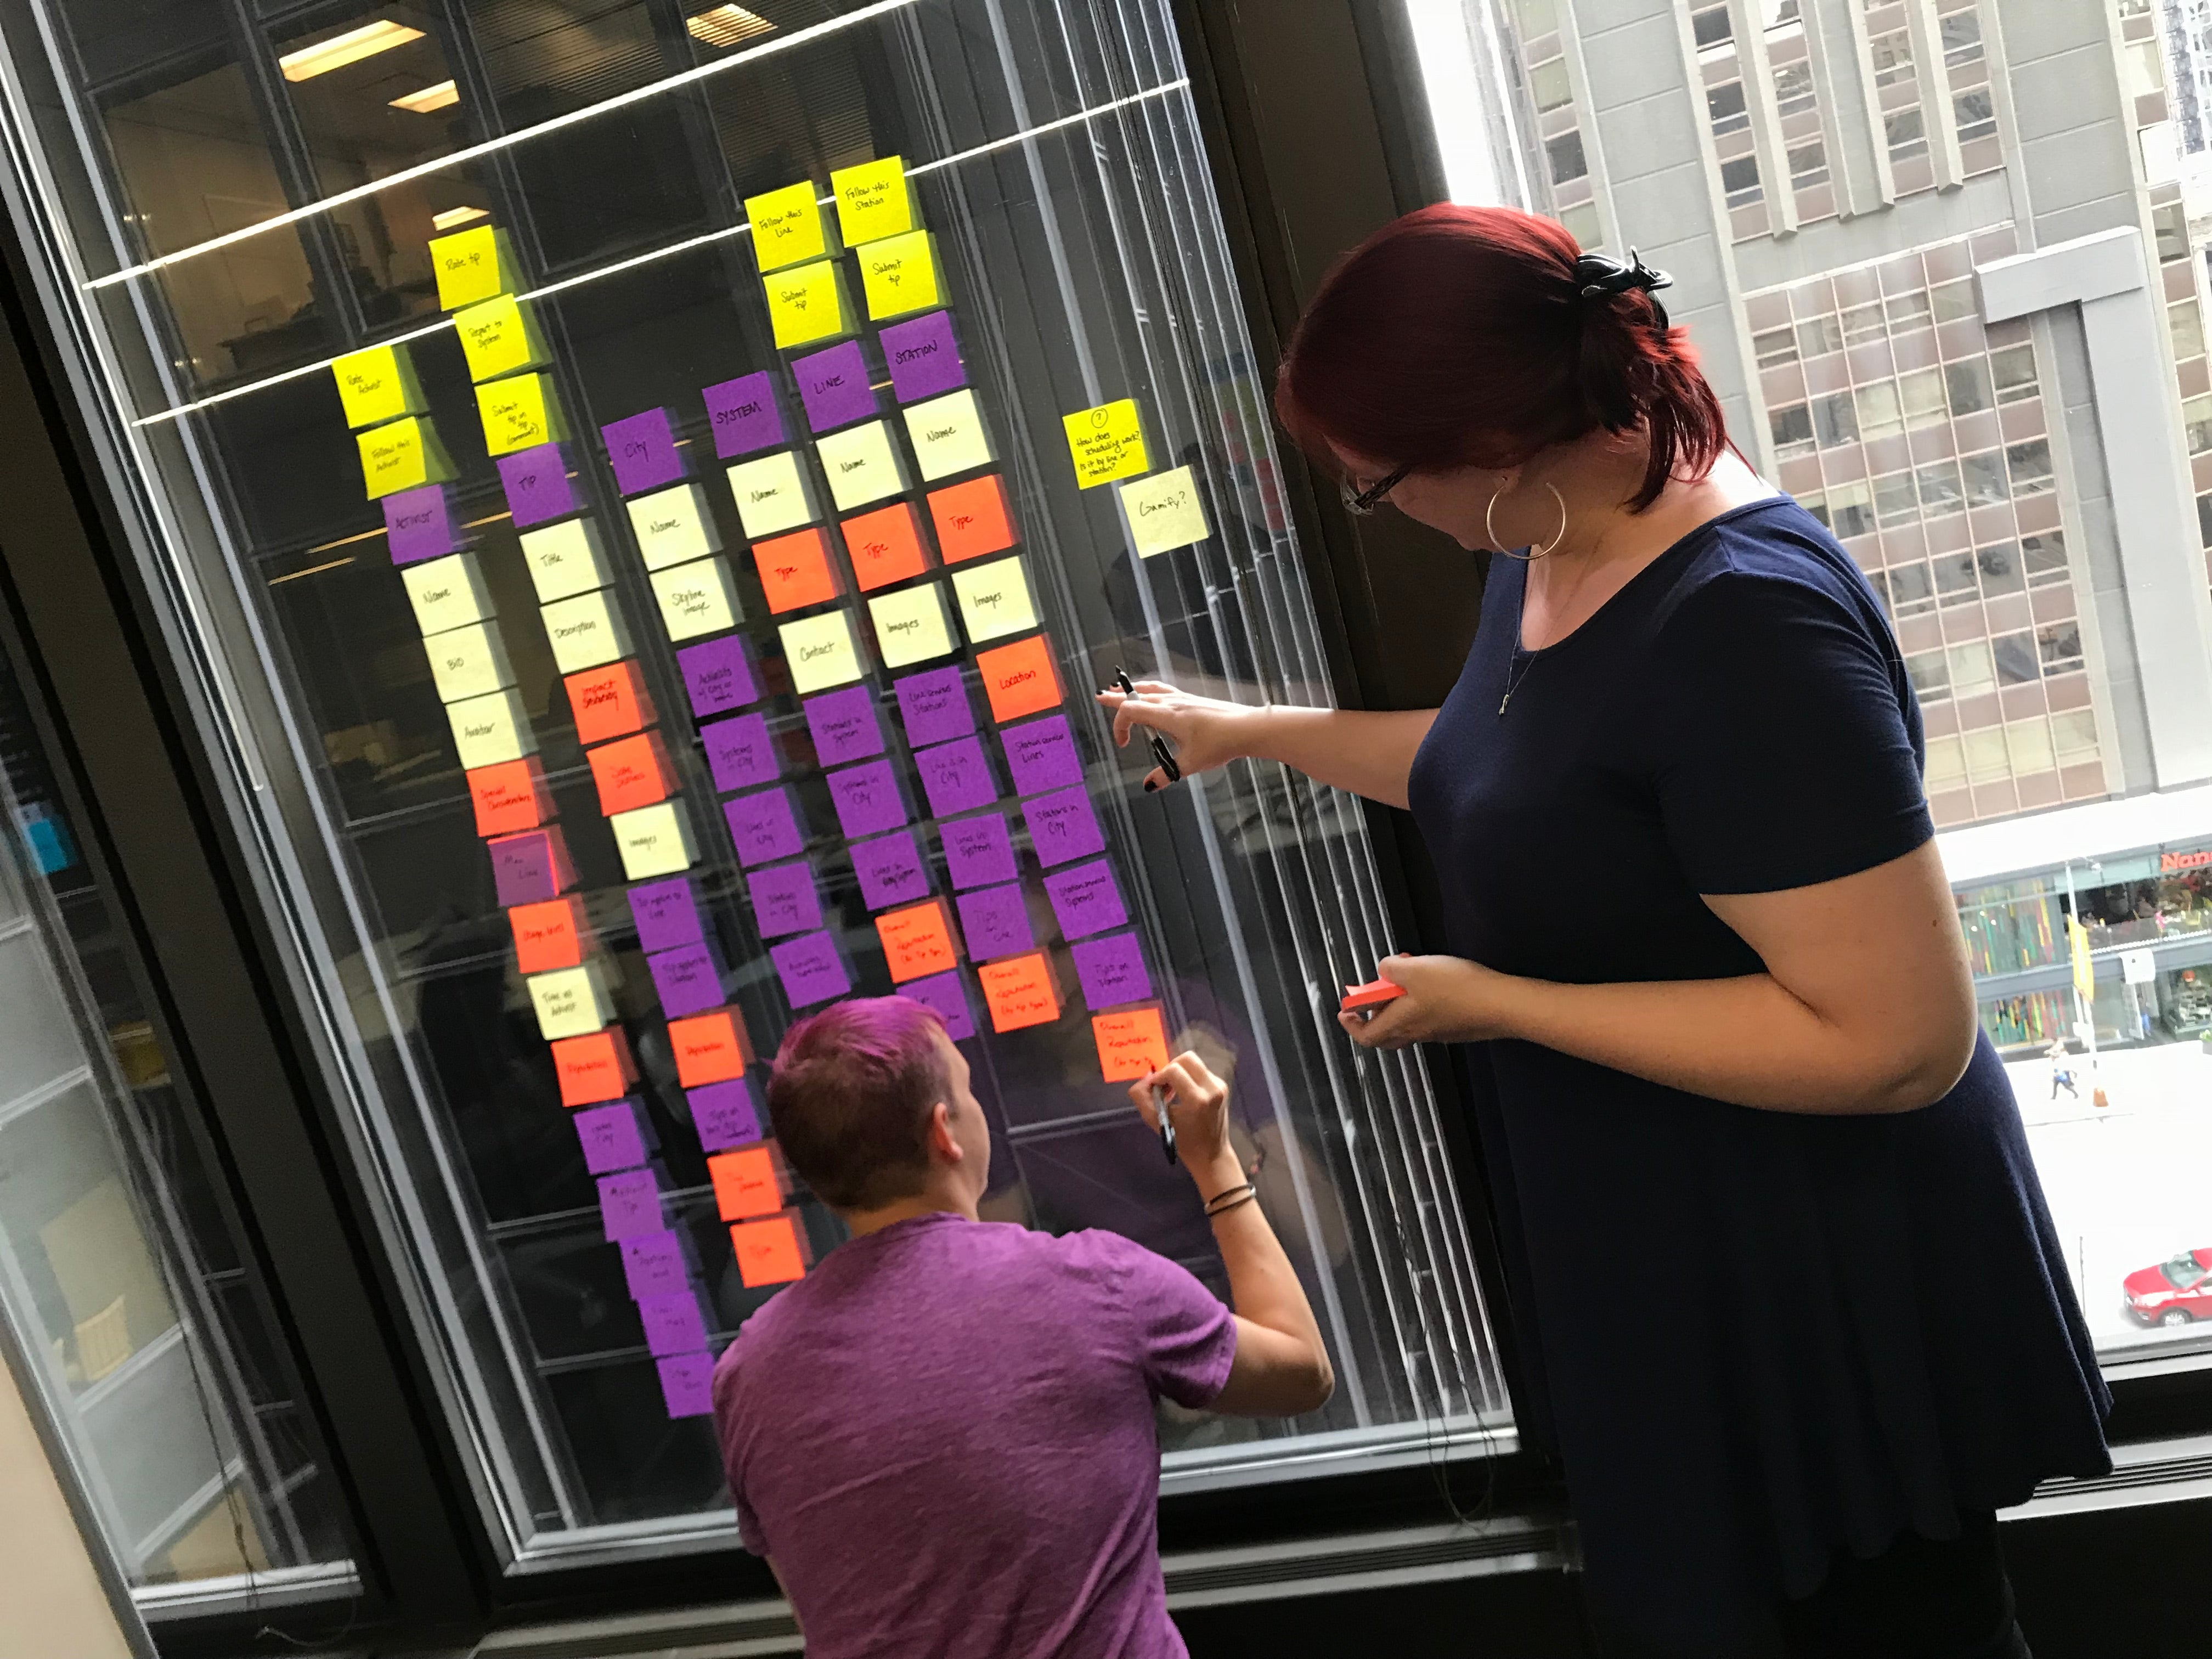 object-oriented user experience exercise with sticky notes